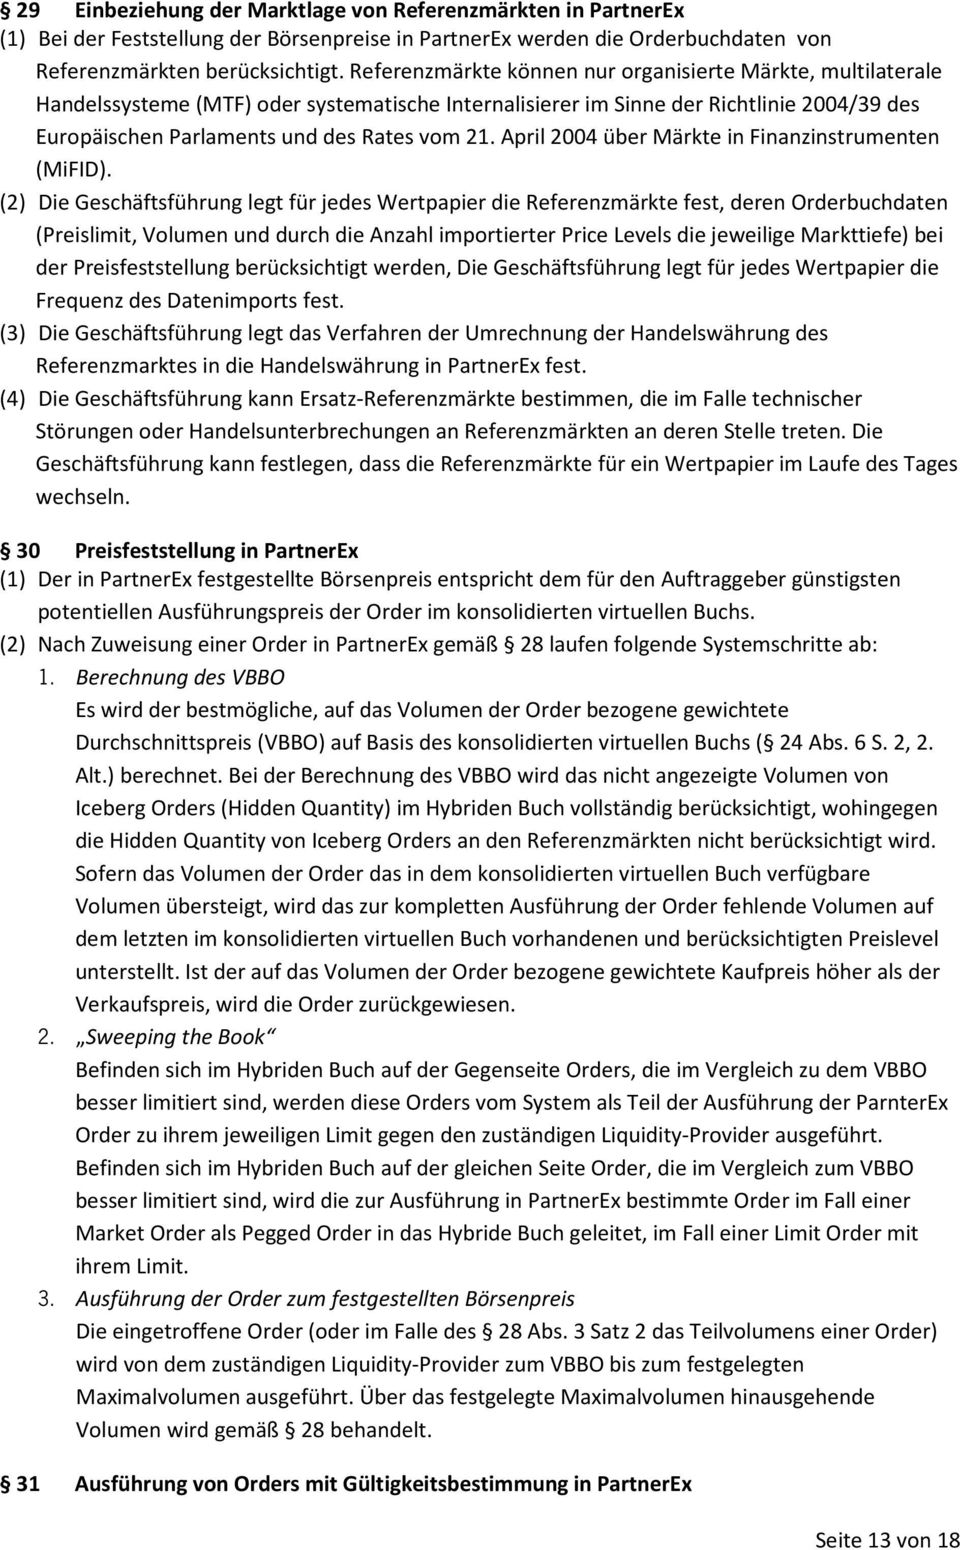 April 2004 über Märkte in Finanzinstrumenten (MiFID).